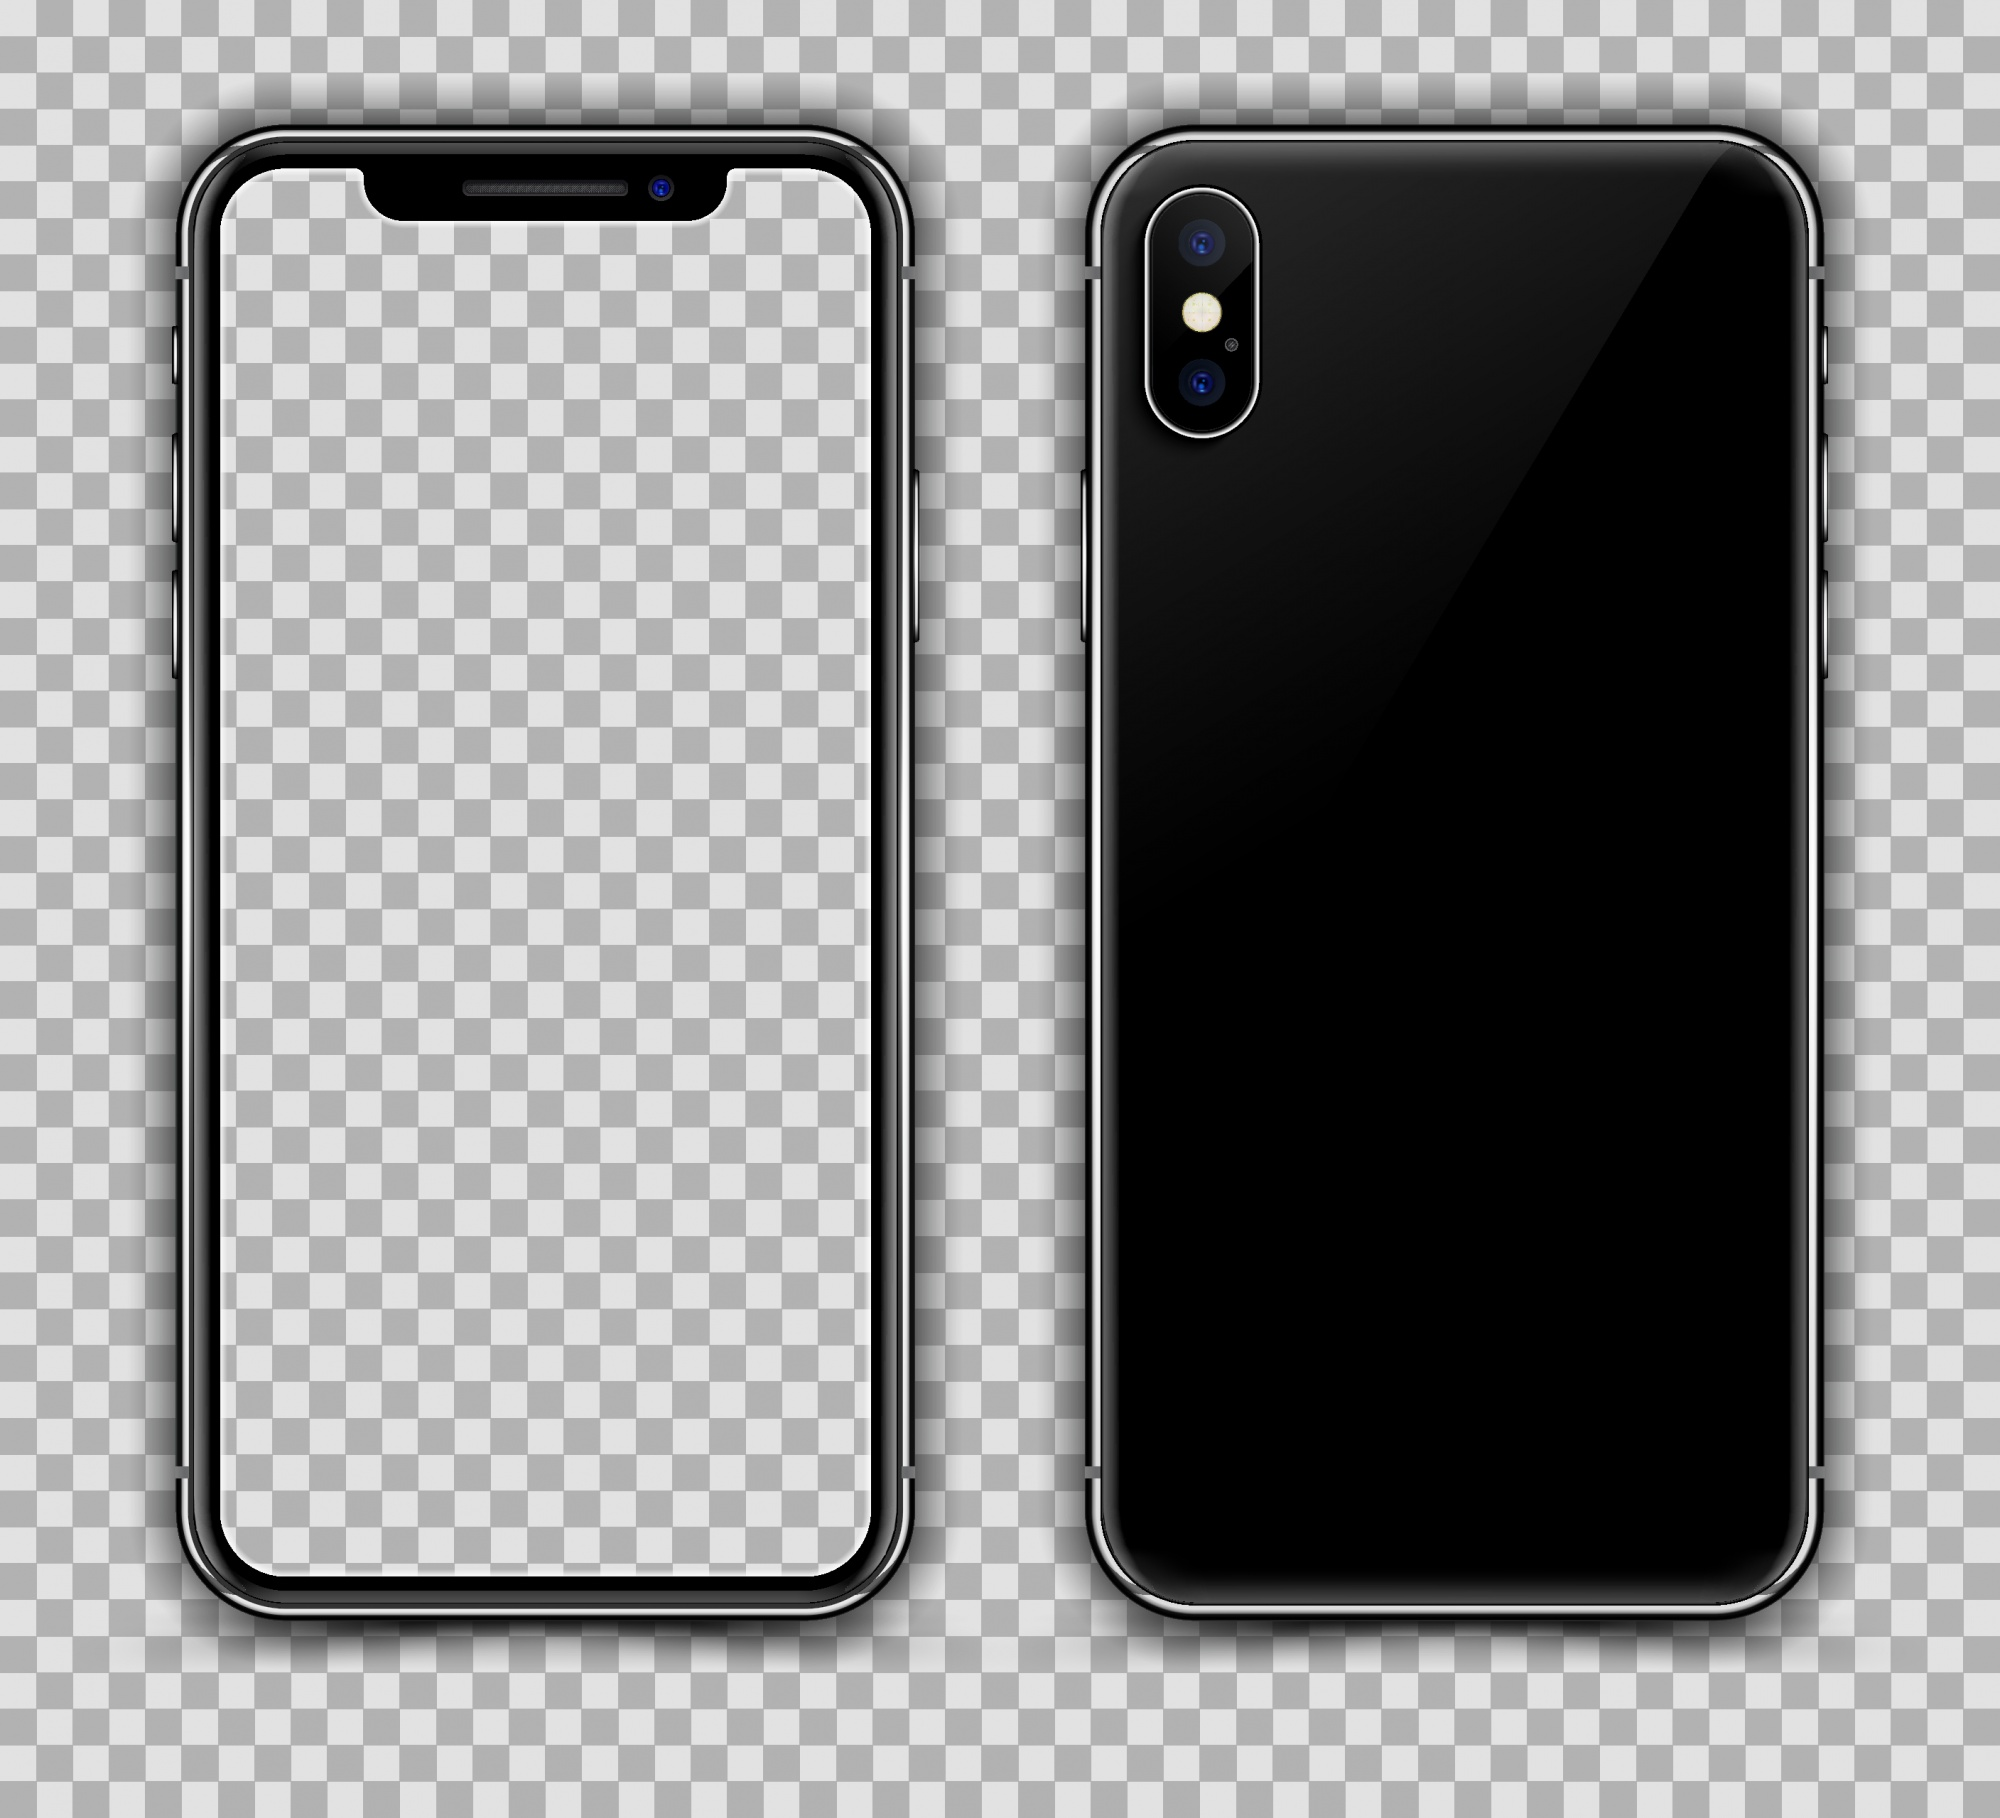 Realistic Smartphone Similar to iPhone X. Front and Rear View.